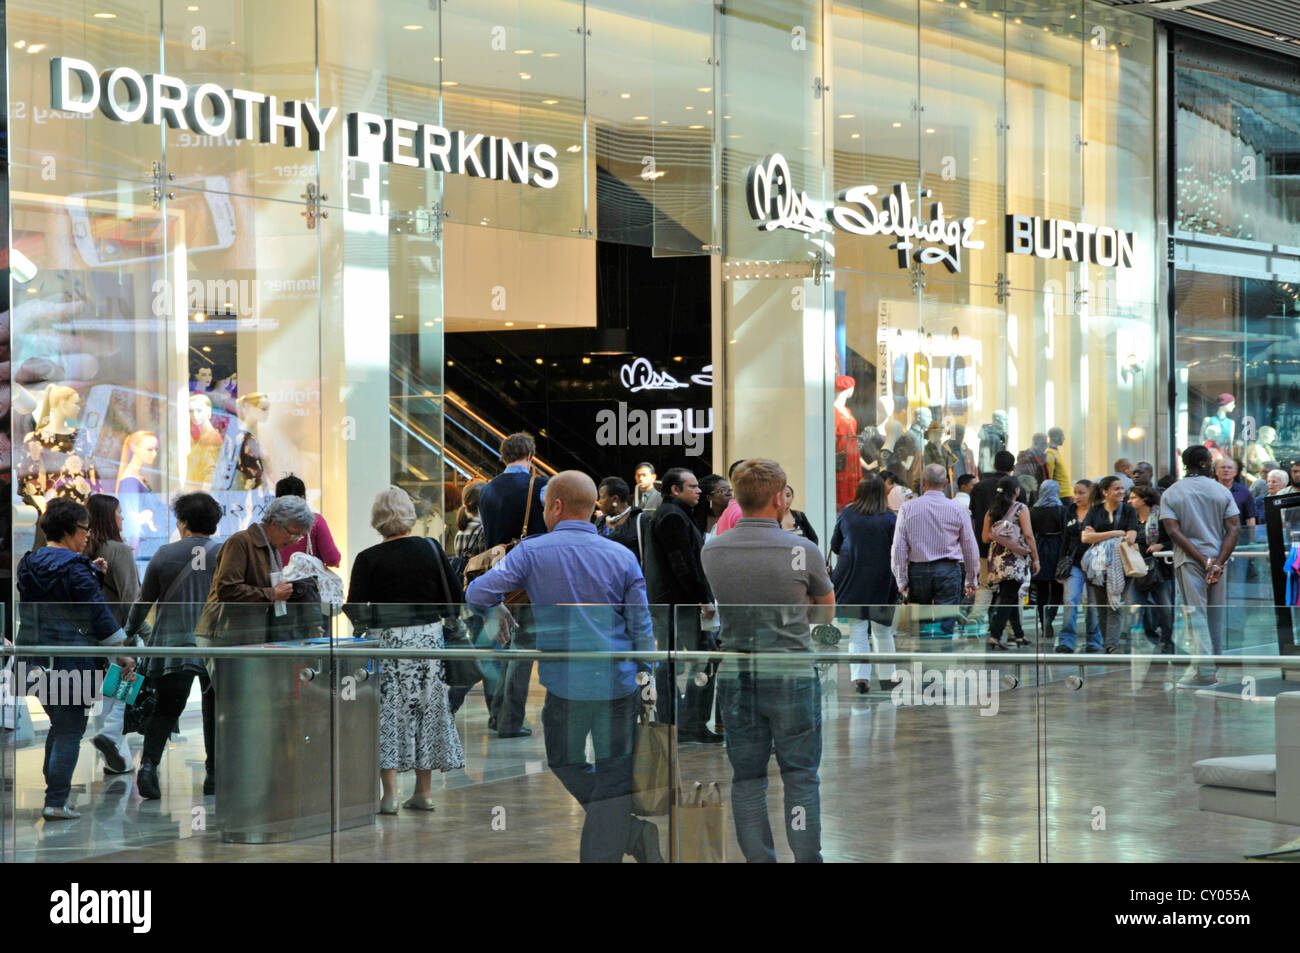 Adjacent shop fronts of Dorothy Perkins Miss Selfridge & Burton stores  all brands of the Arcadia Group in indoor - Stock Image